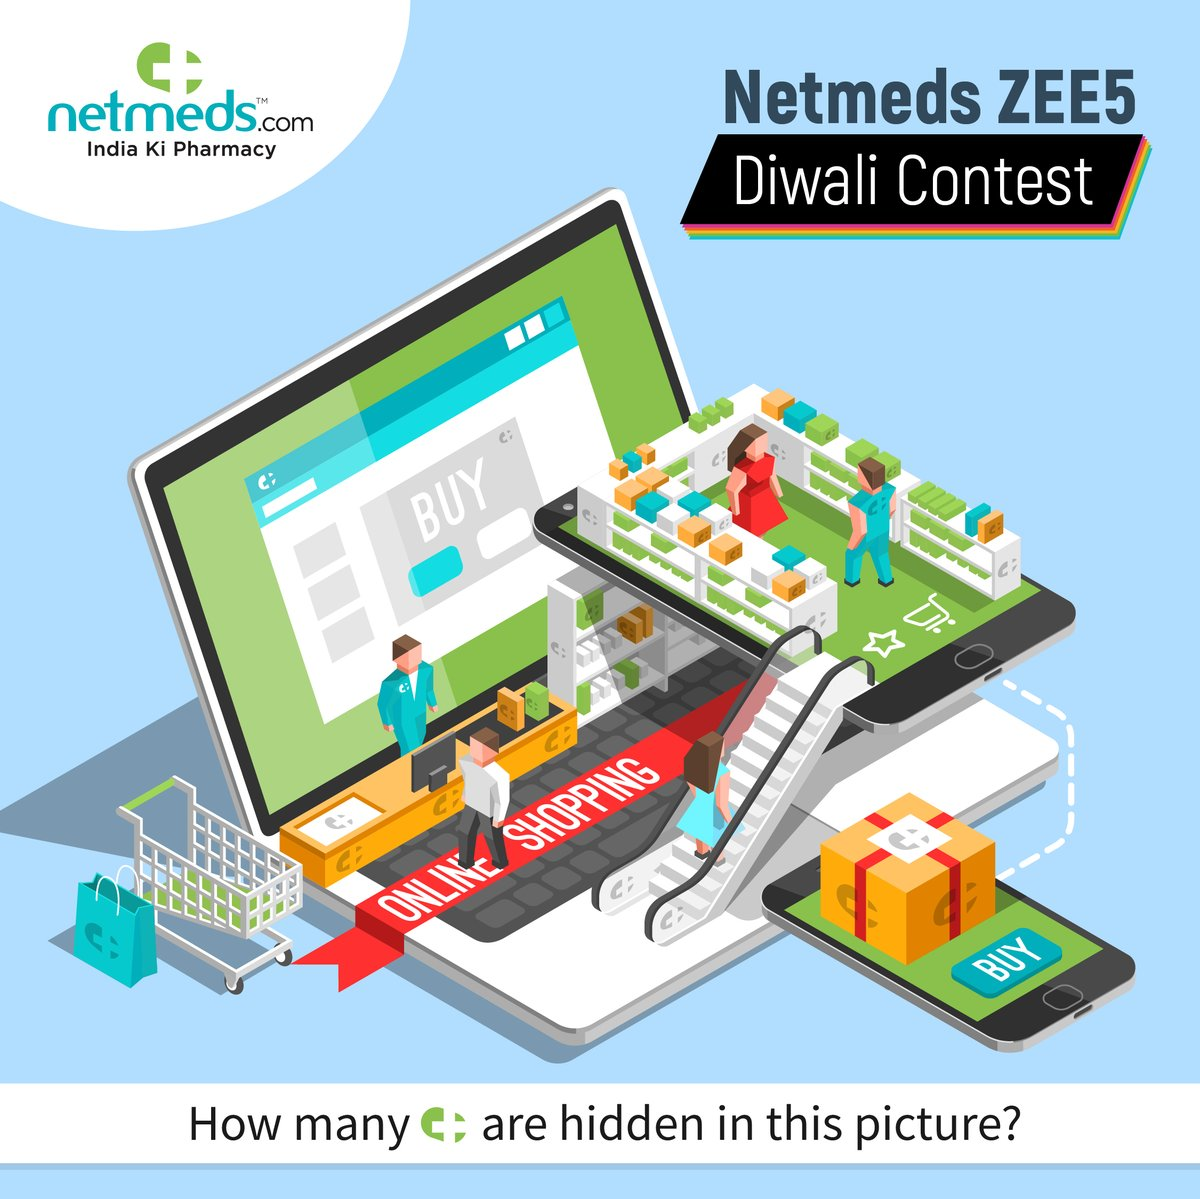 Netmeds ZEE5 Diwali #ContestAlert! 🪔  Comment with the number of Netmeds pills you can find in the image.   250 winners with the right answer stand a chance to win Free ZEE5 6 months subscription.   The contest ends at 11:59 PM on 15/11/2020  #Diwali #India #Health #Zee5 https://t.co/LBZbBVaHtO